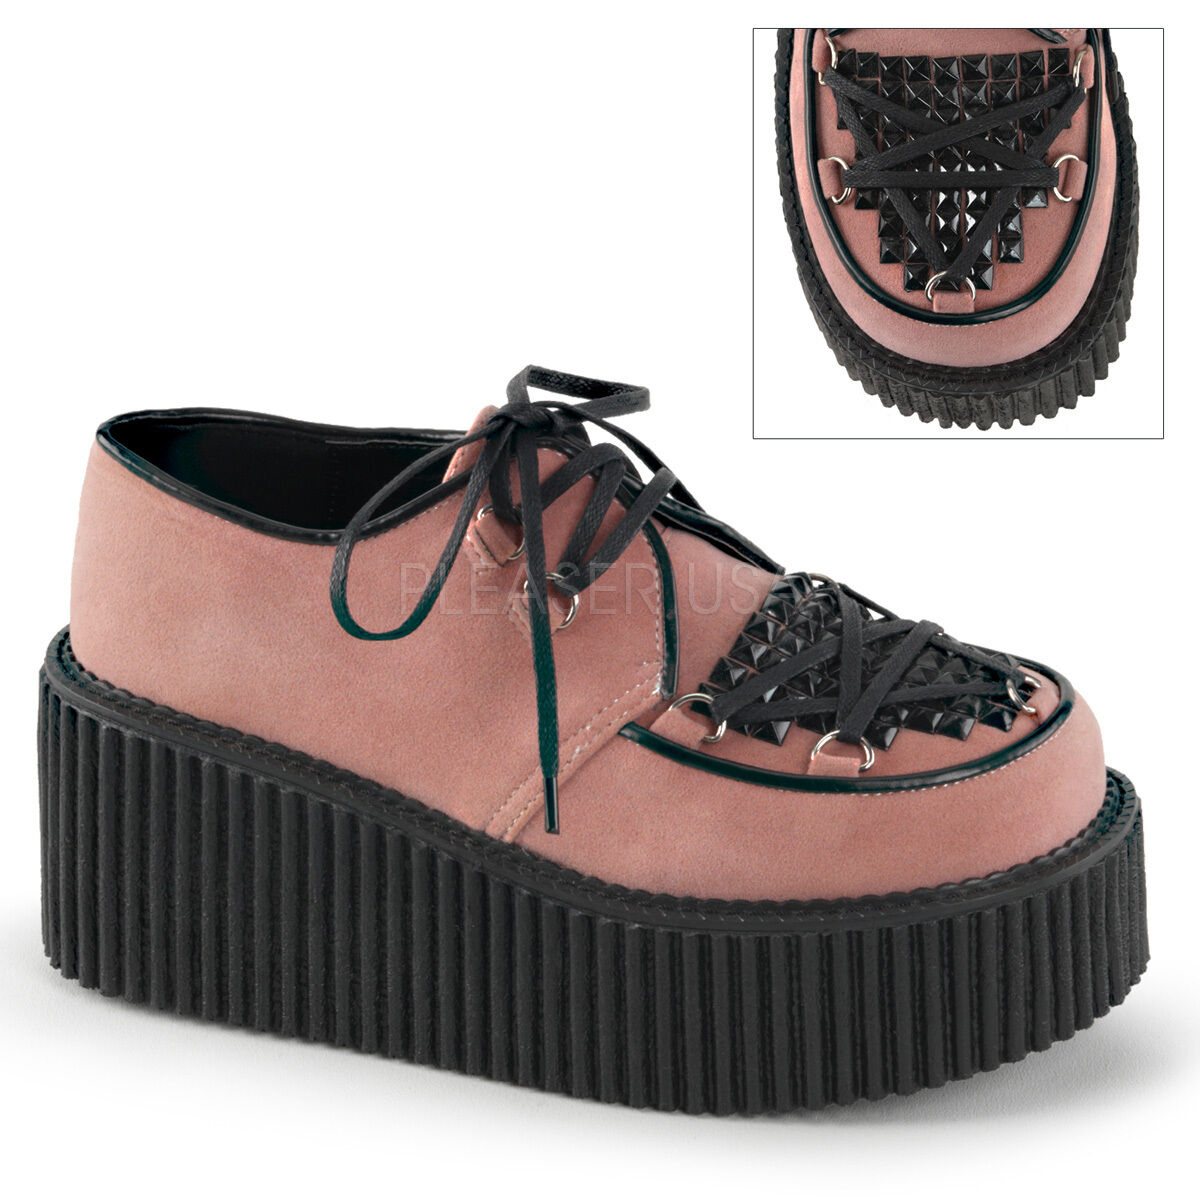 Demonia CREEPER-214 CREEPER-215 CREEPER-216 Womens CREEPER-218 Womens CREEPER-216 Creepers 8af662